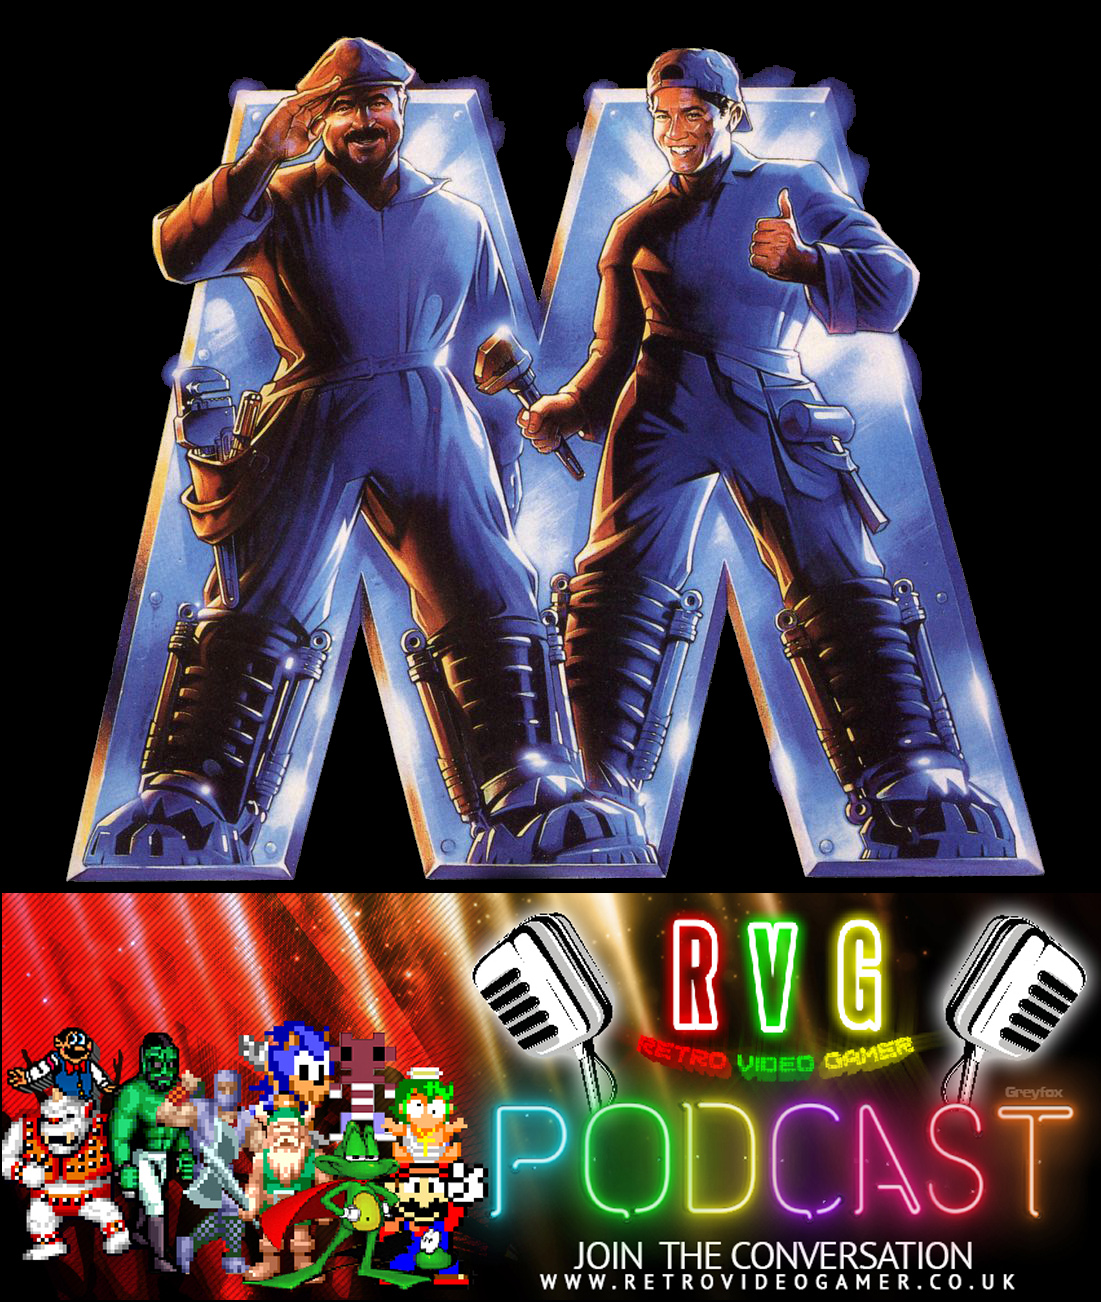 RVG Podcast Episode 4 -Video Game Movies